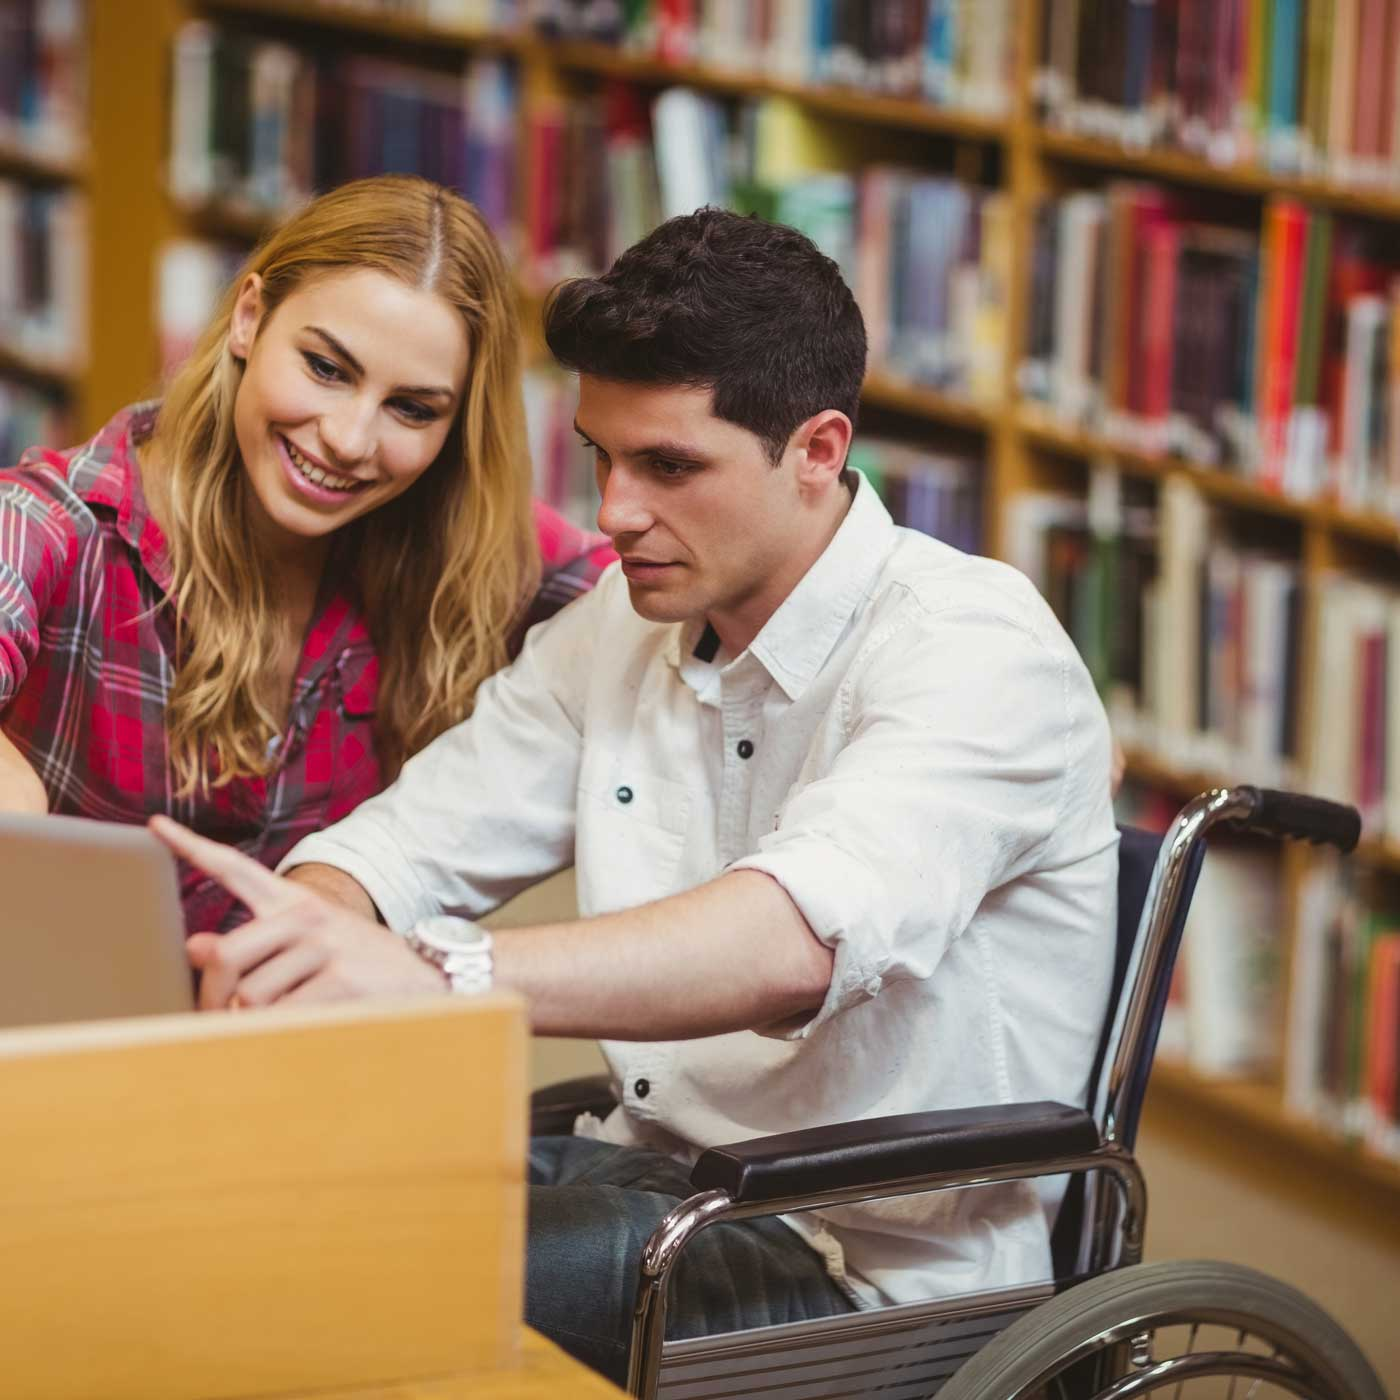 Two students studying together in a library.